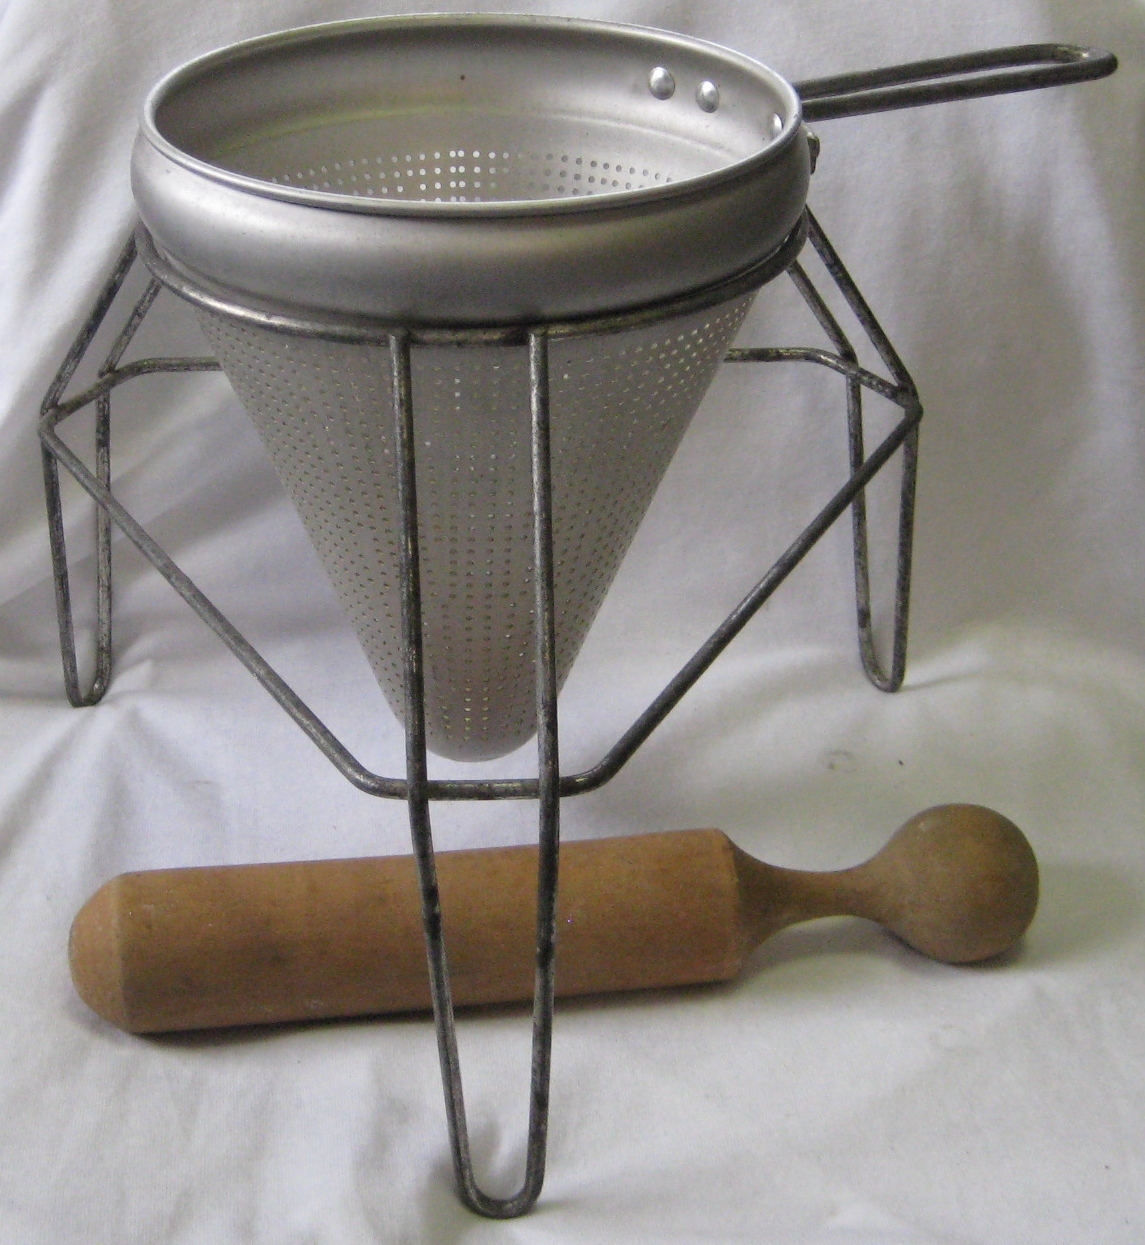 Cone Sieve/Colander/Strainer/Masher/Food Mill with Tripod Stand and Wood Pestle